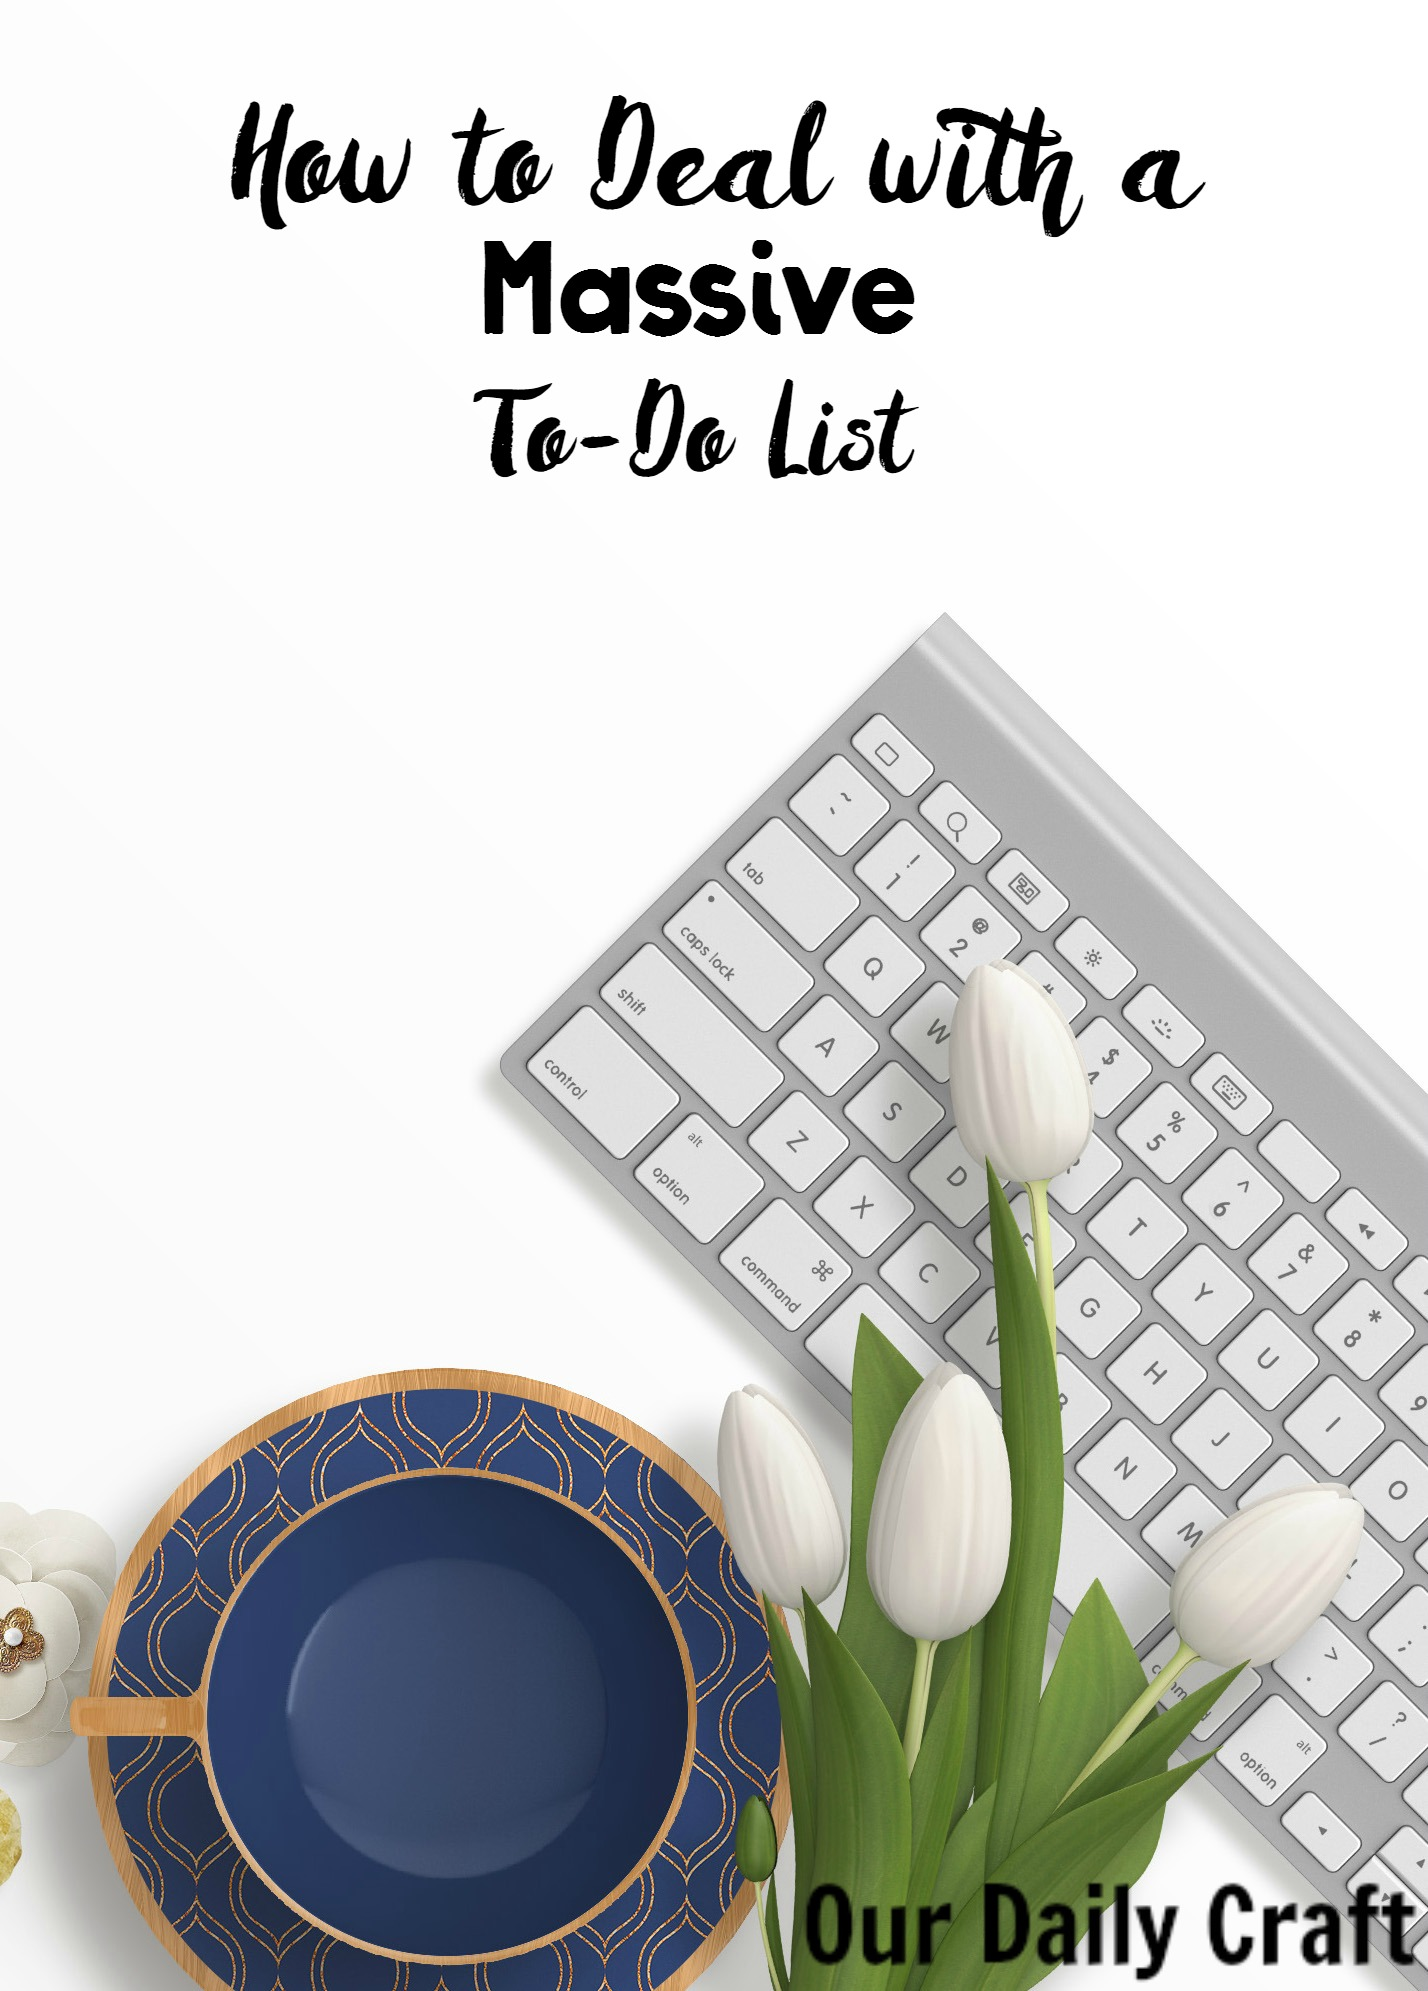 How to Deal with a Massive To-Do List